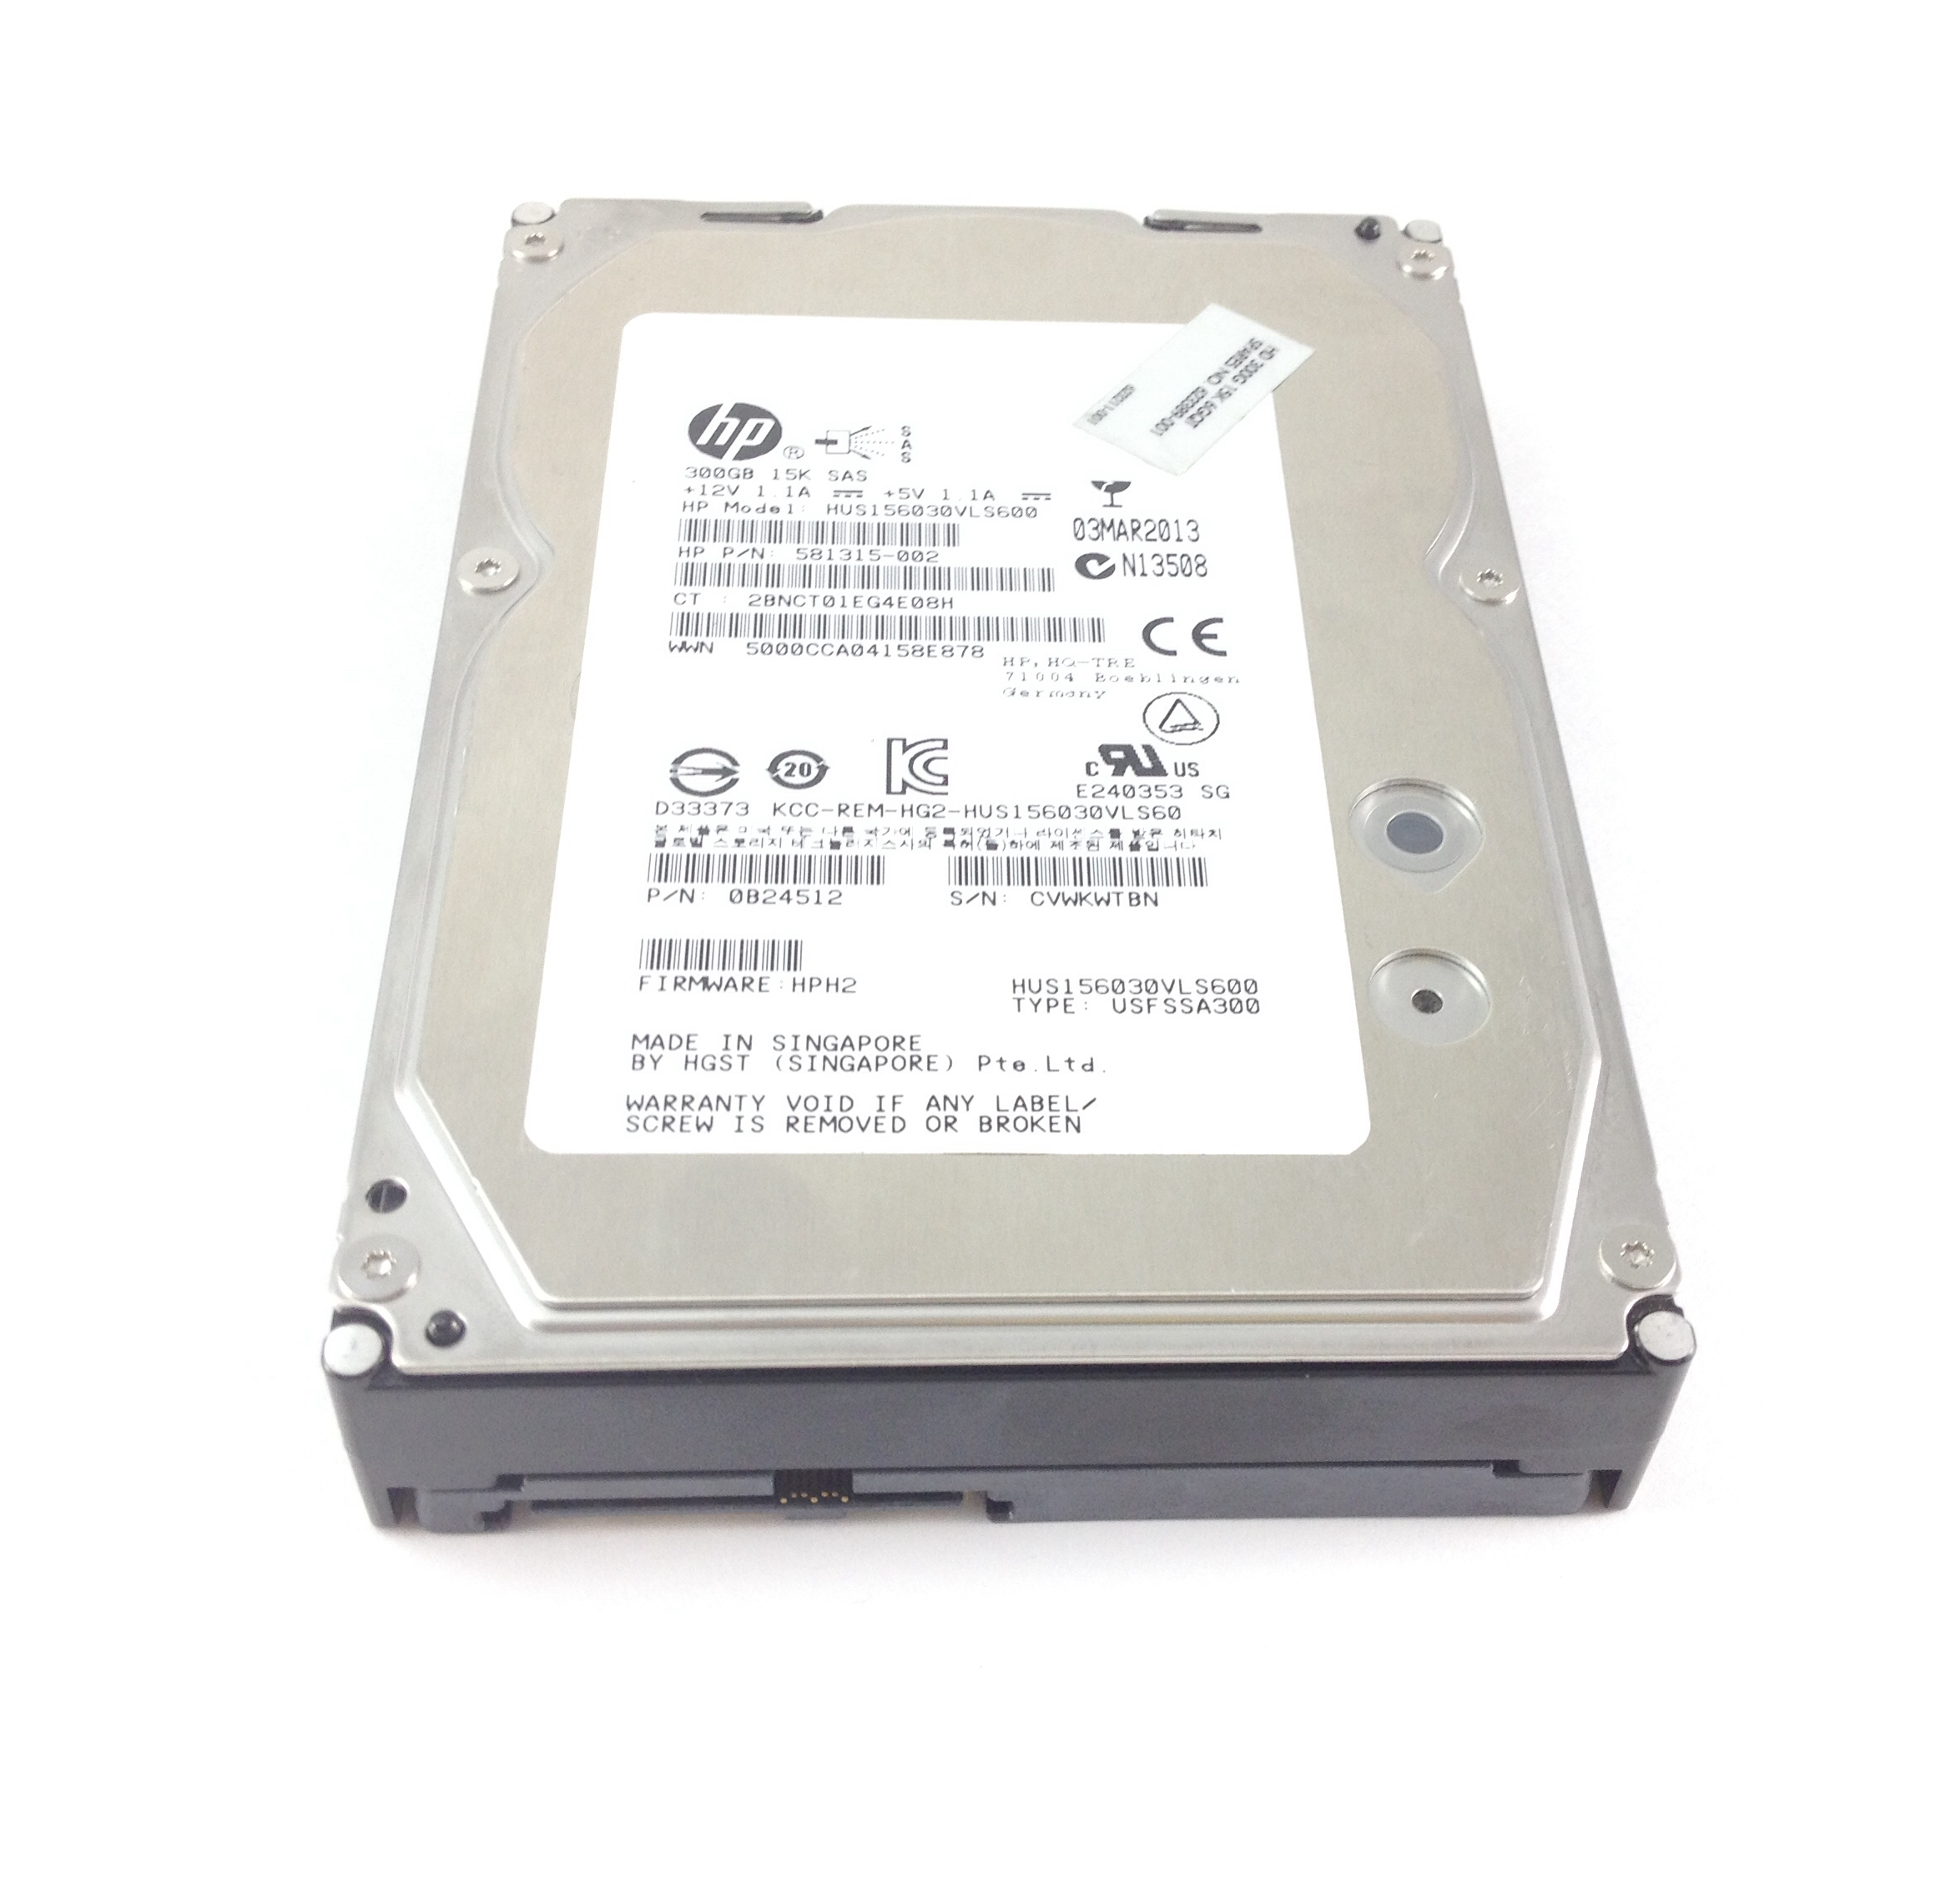 HP Hitachi Ultrastar 300GB 6Gbps 15K SAS 3.5'' HDD (623389-001)